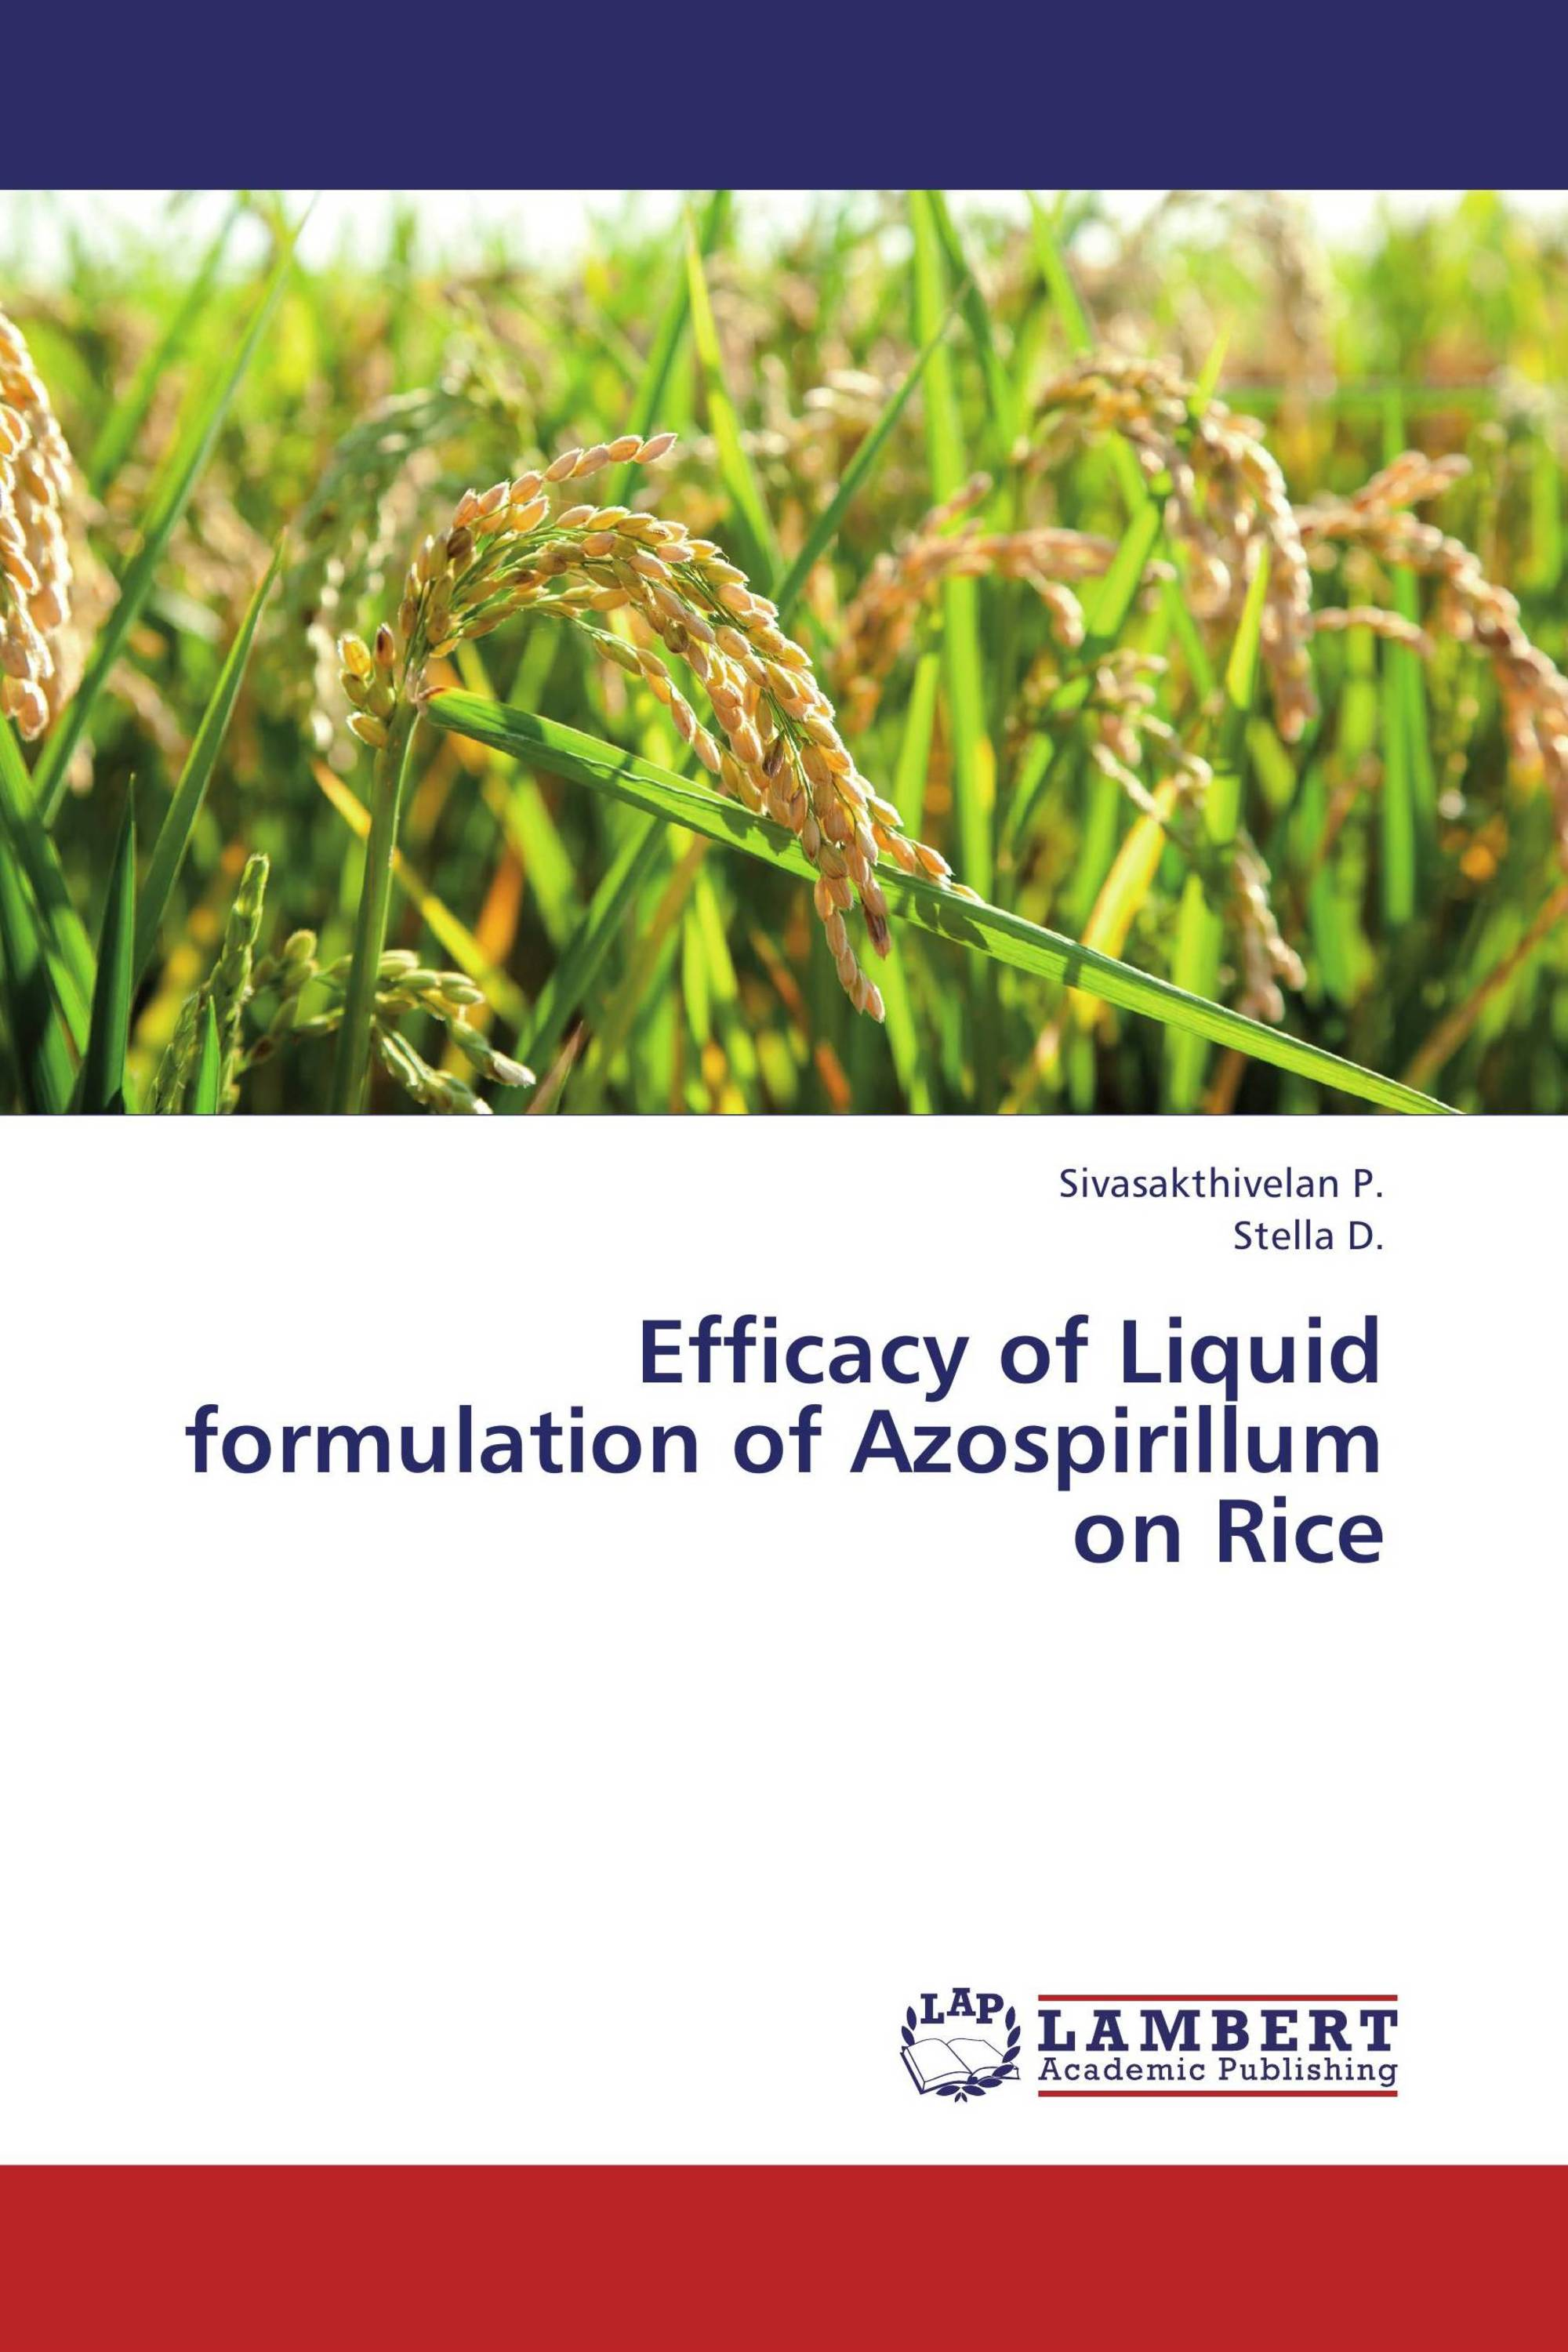 Efficacy of Liquid formulation of Azospirillum on Rice